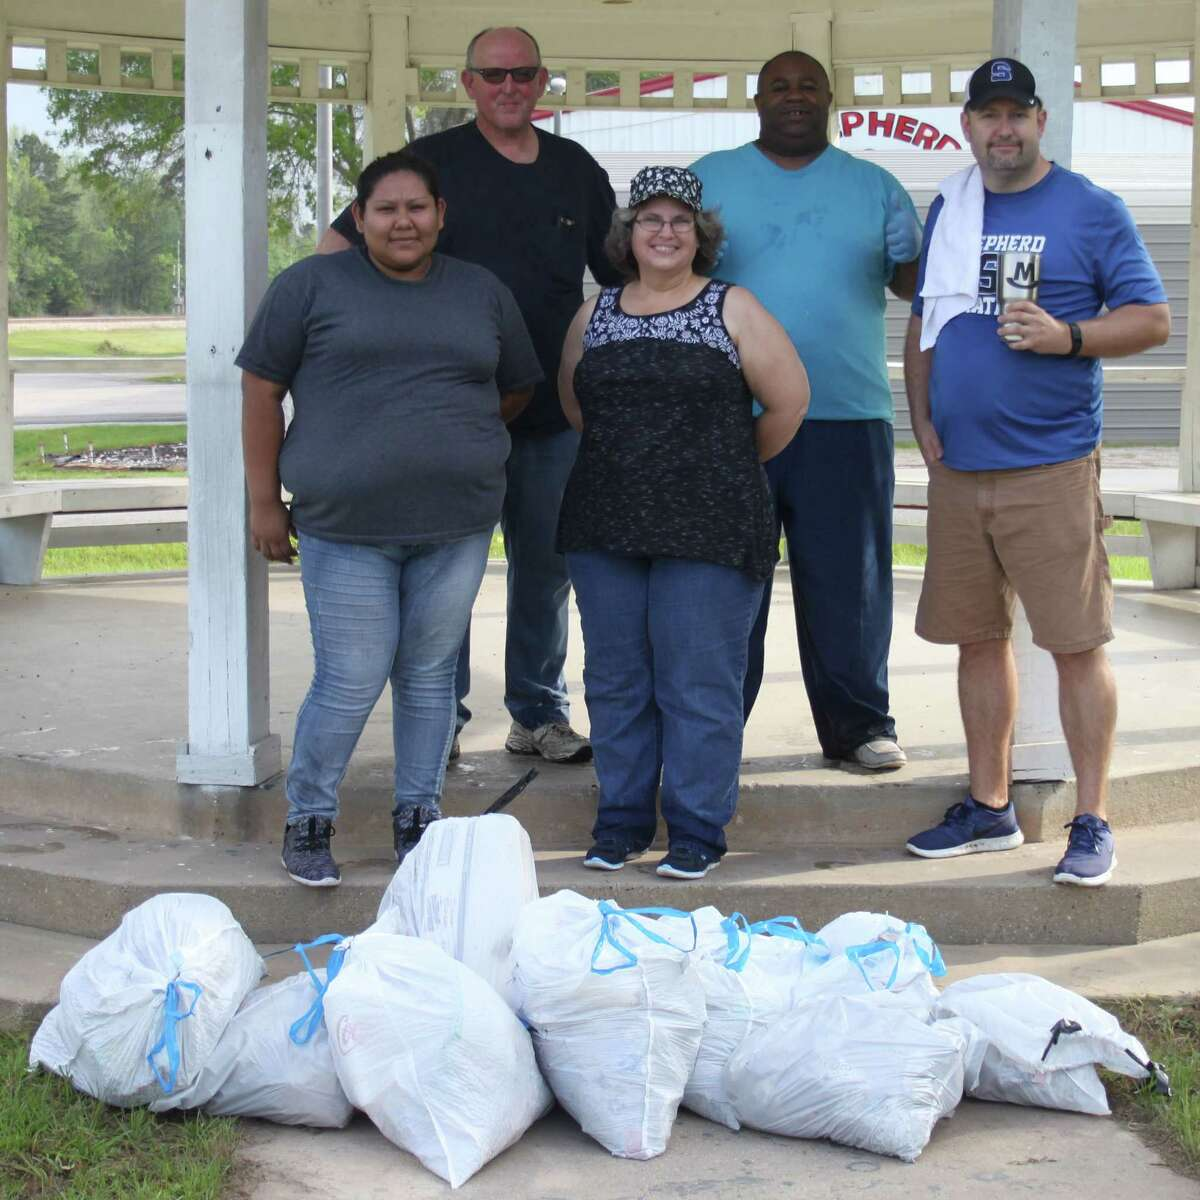 Citizens of Shepherd came together onApril 22 to clean up the city for Earth Day. Left to right are Nohemi Gonzalez, Richard Hagler, Debra Hagler, Mayor Earl Brown and Charles Minton.